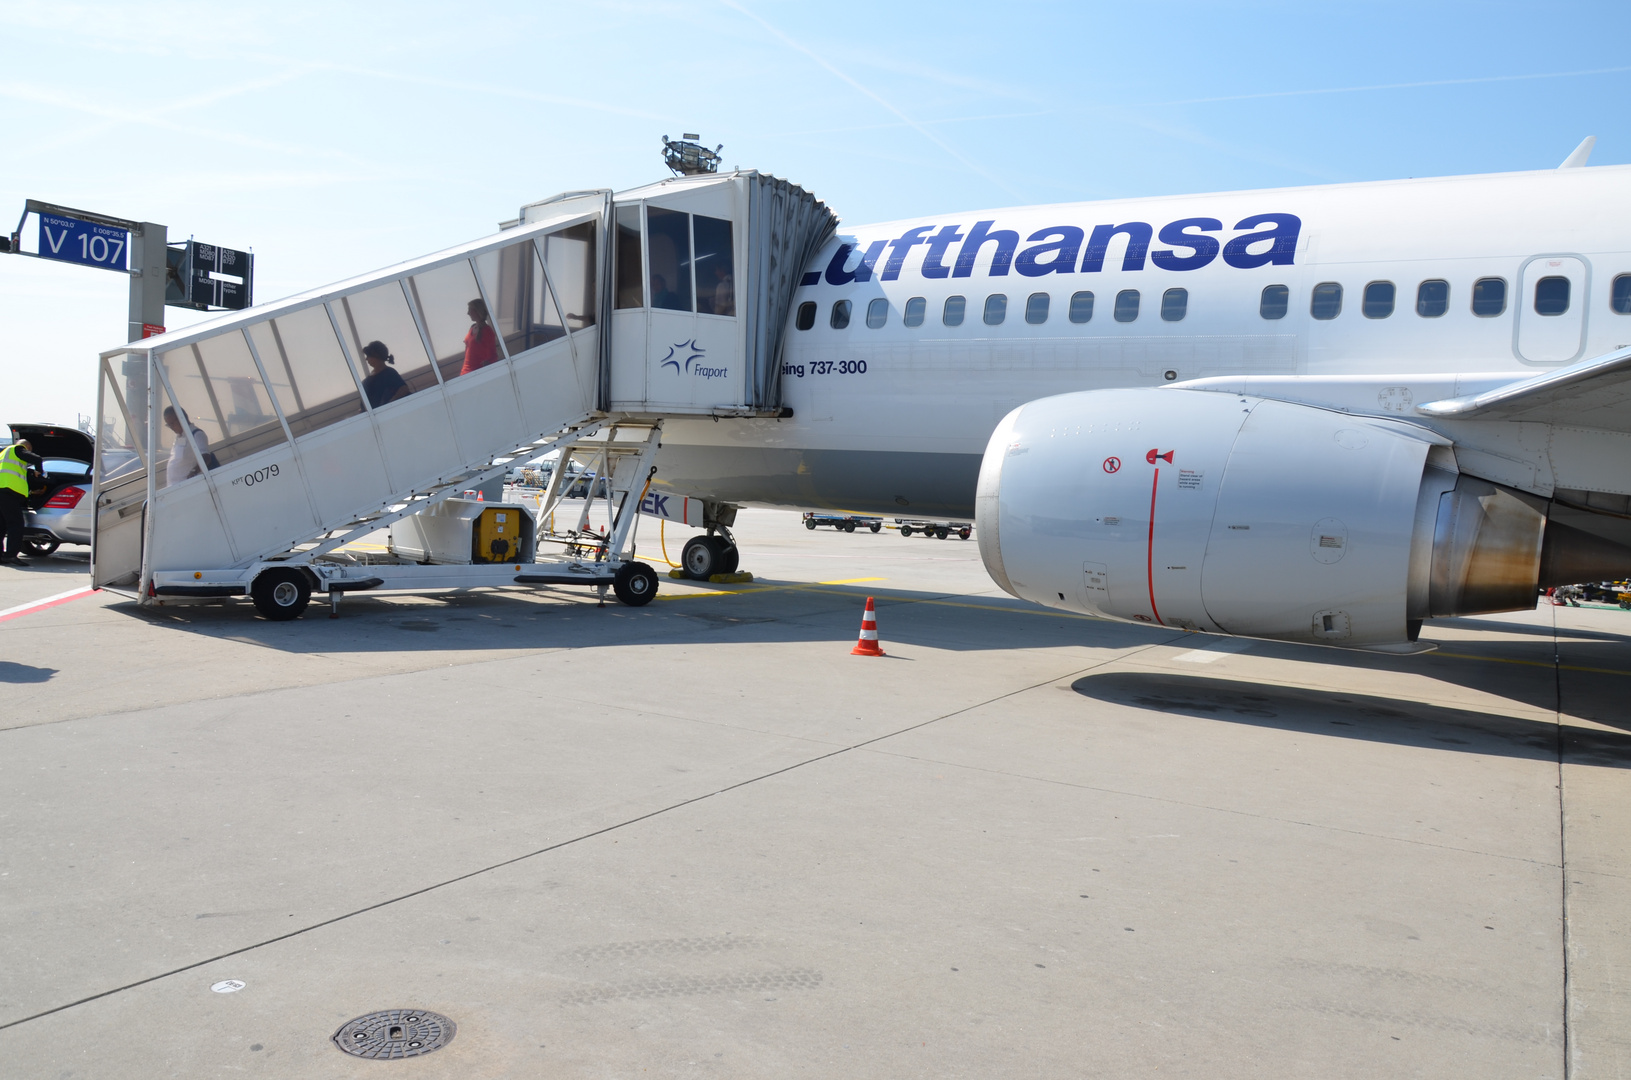 Frankfurt Outfield Position V107 - Boing 737-300